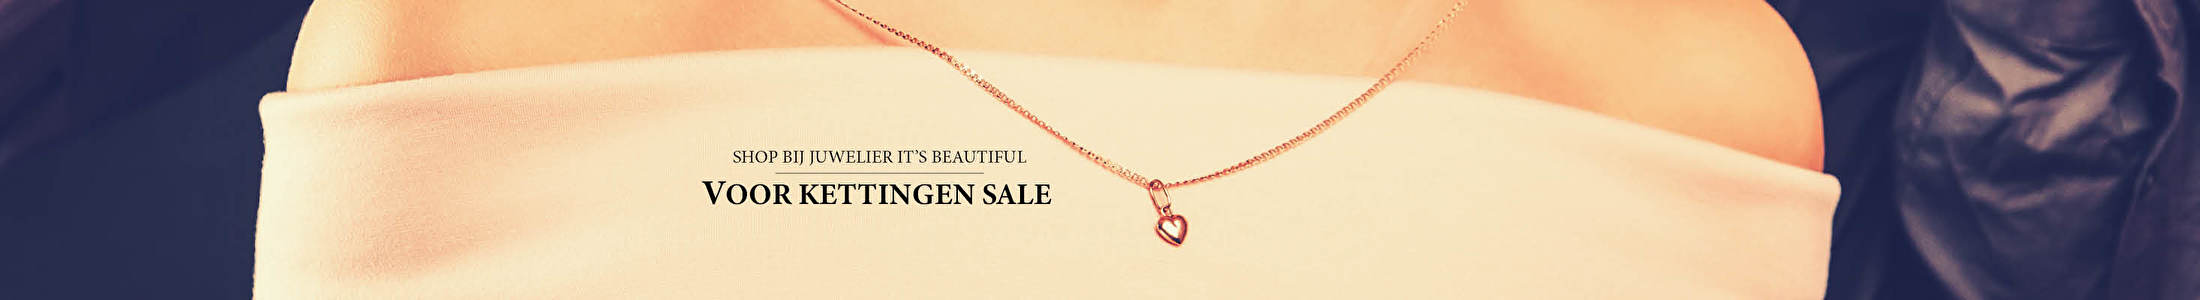 Shop bij juwelier It's Beautiful voor kettingen sale